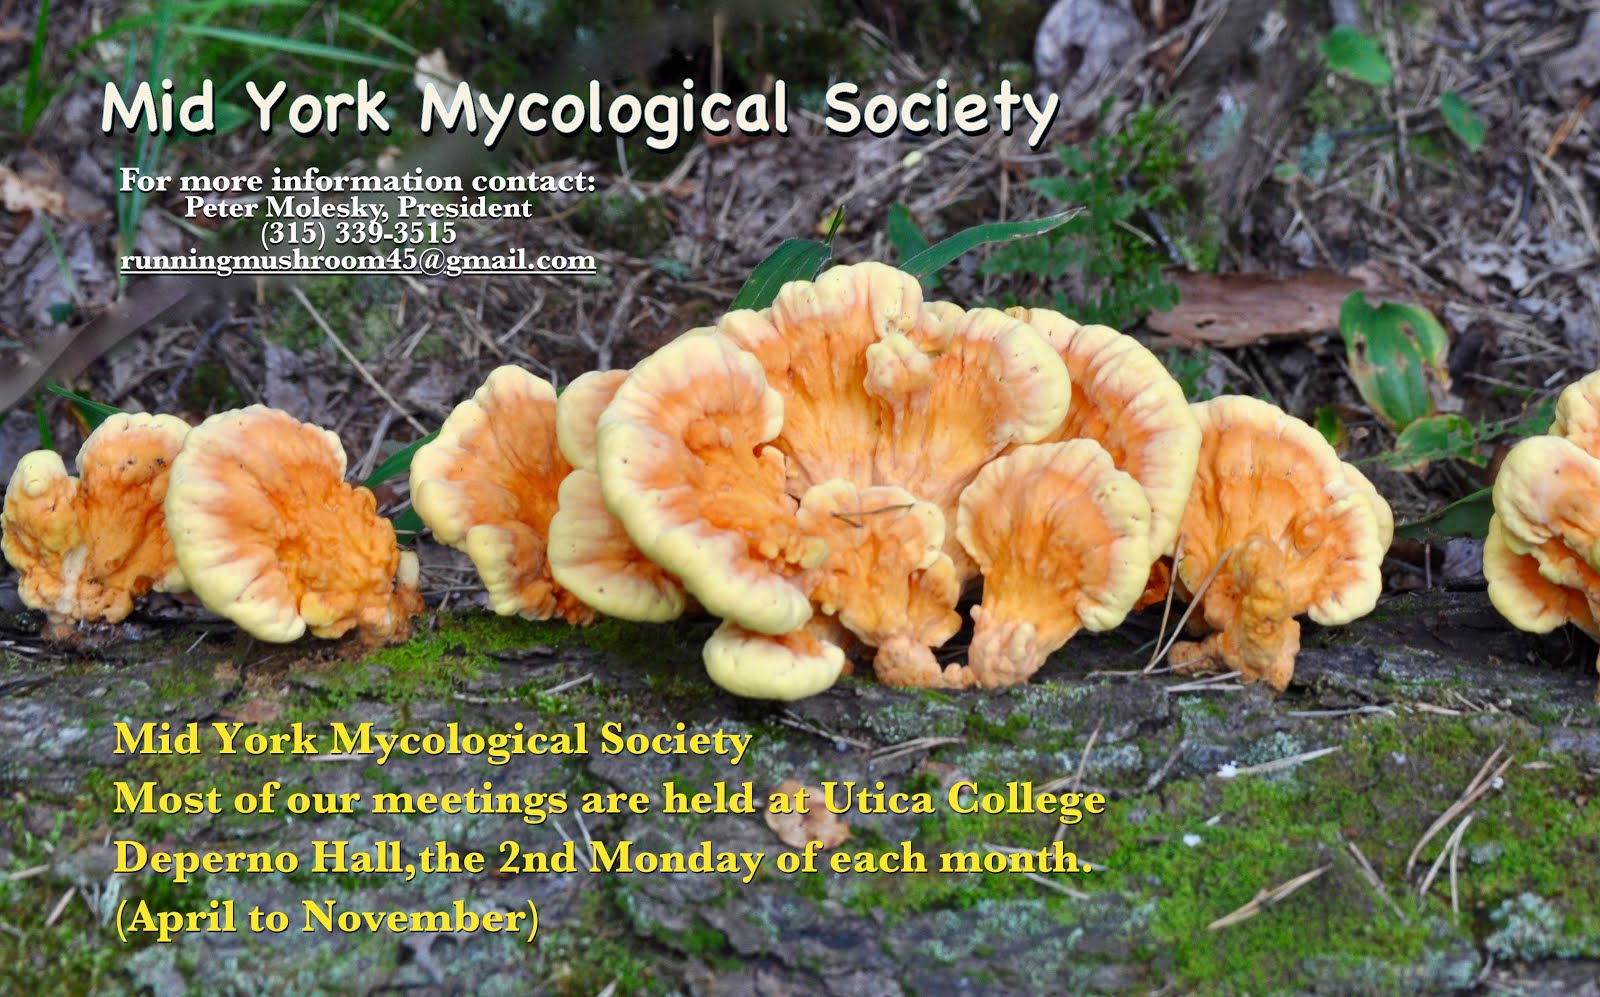 MidYork Mycological Society